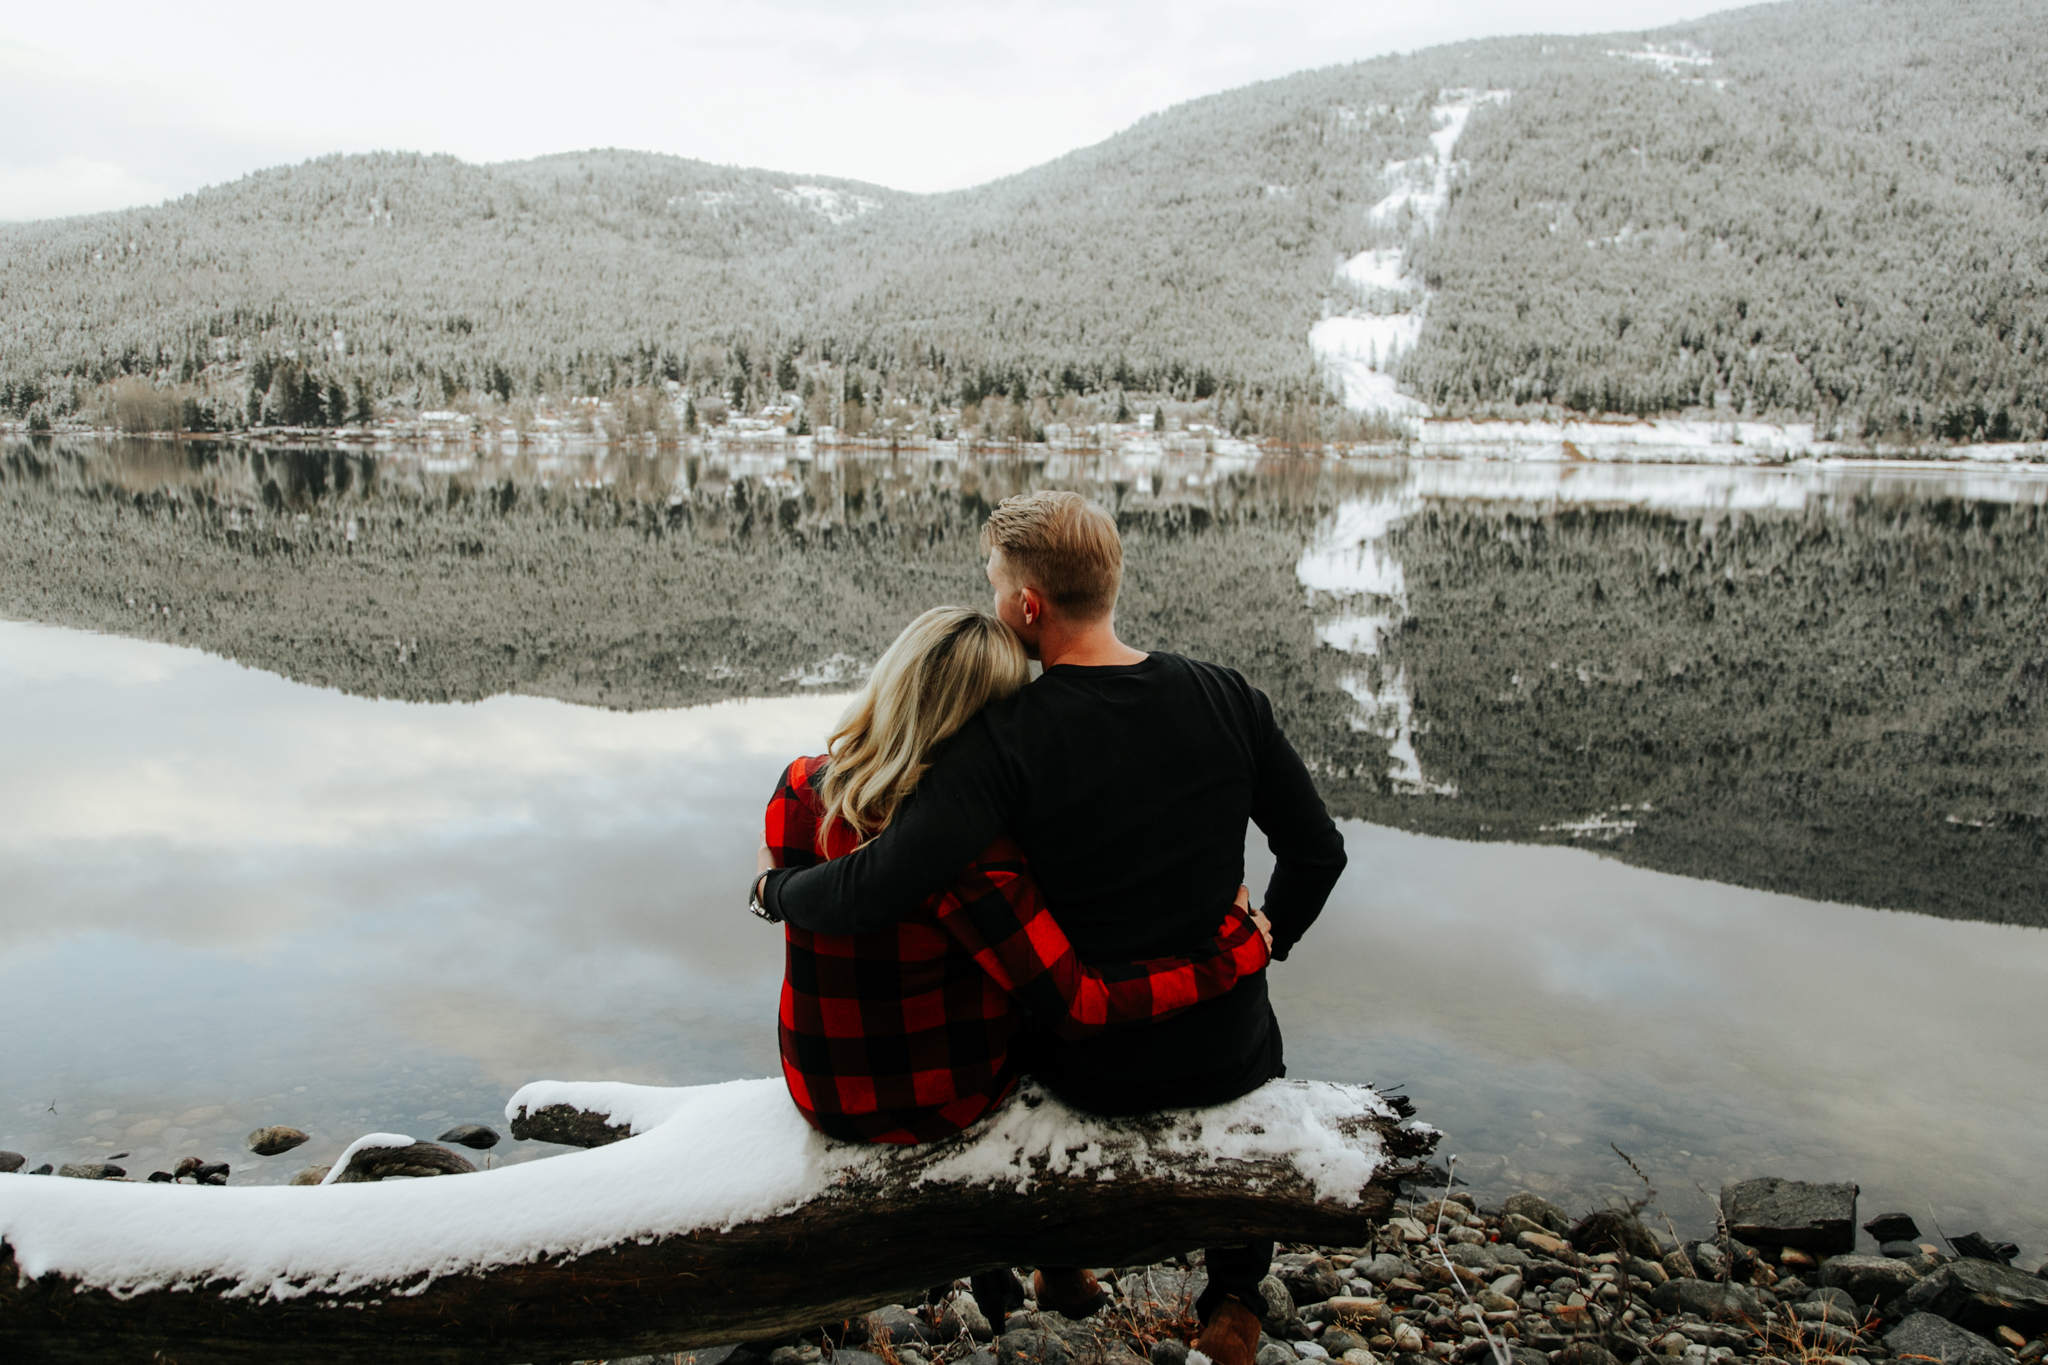 love-and-be-loved-photography-mountain-engagement-ashlyn-rob-perfect-fit-4-u-photo-image-picture-62.jpg